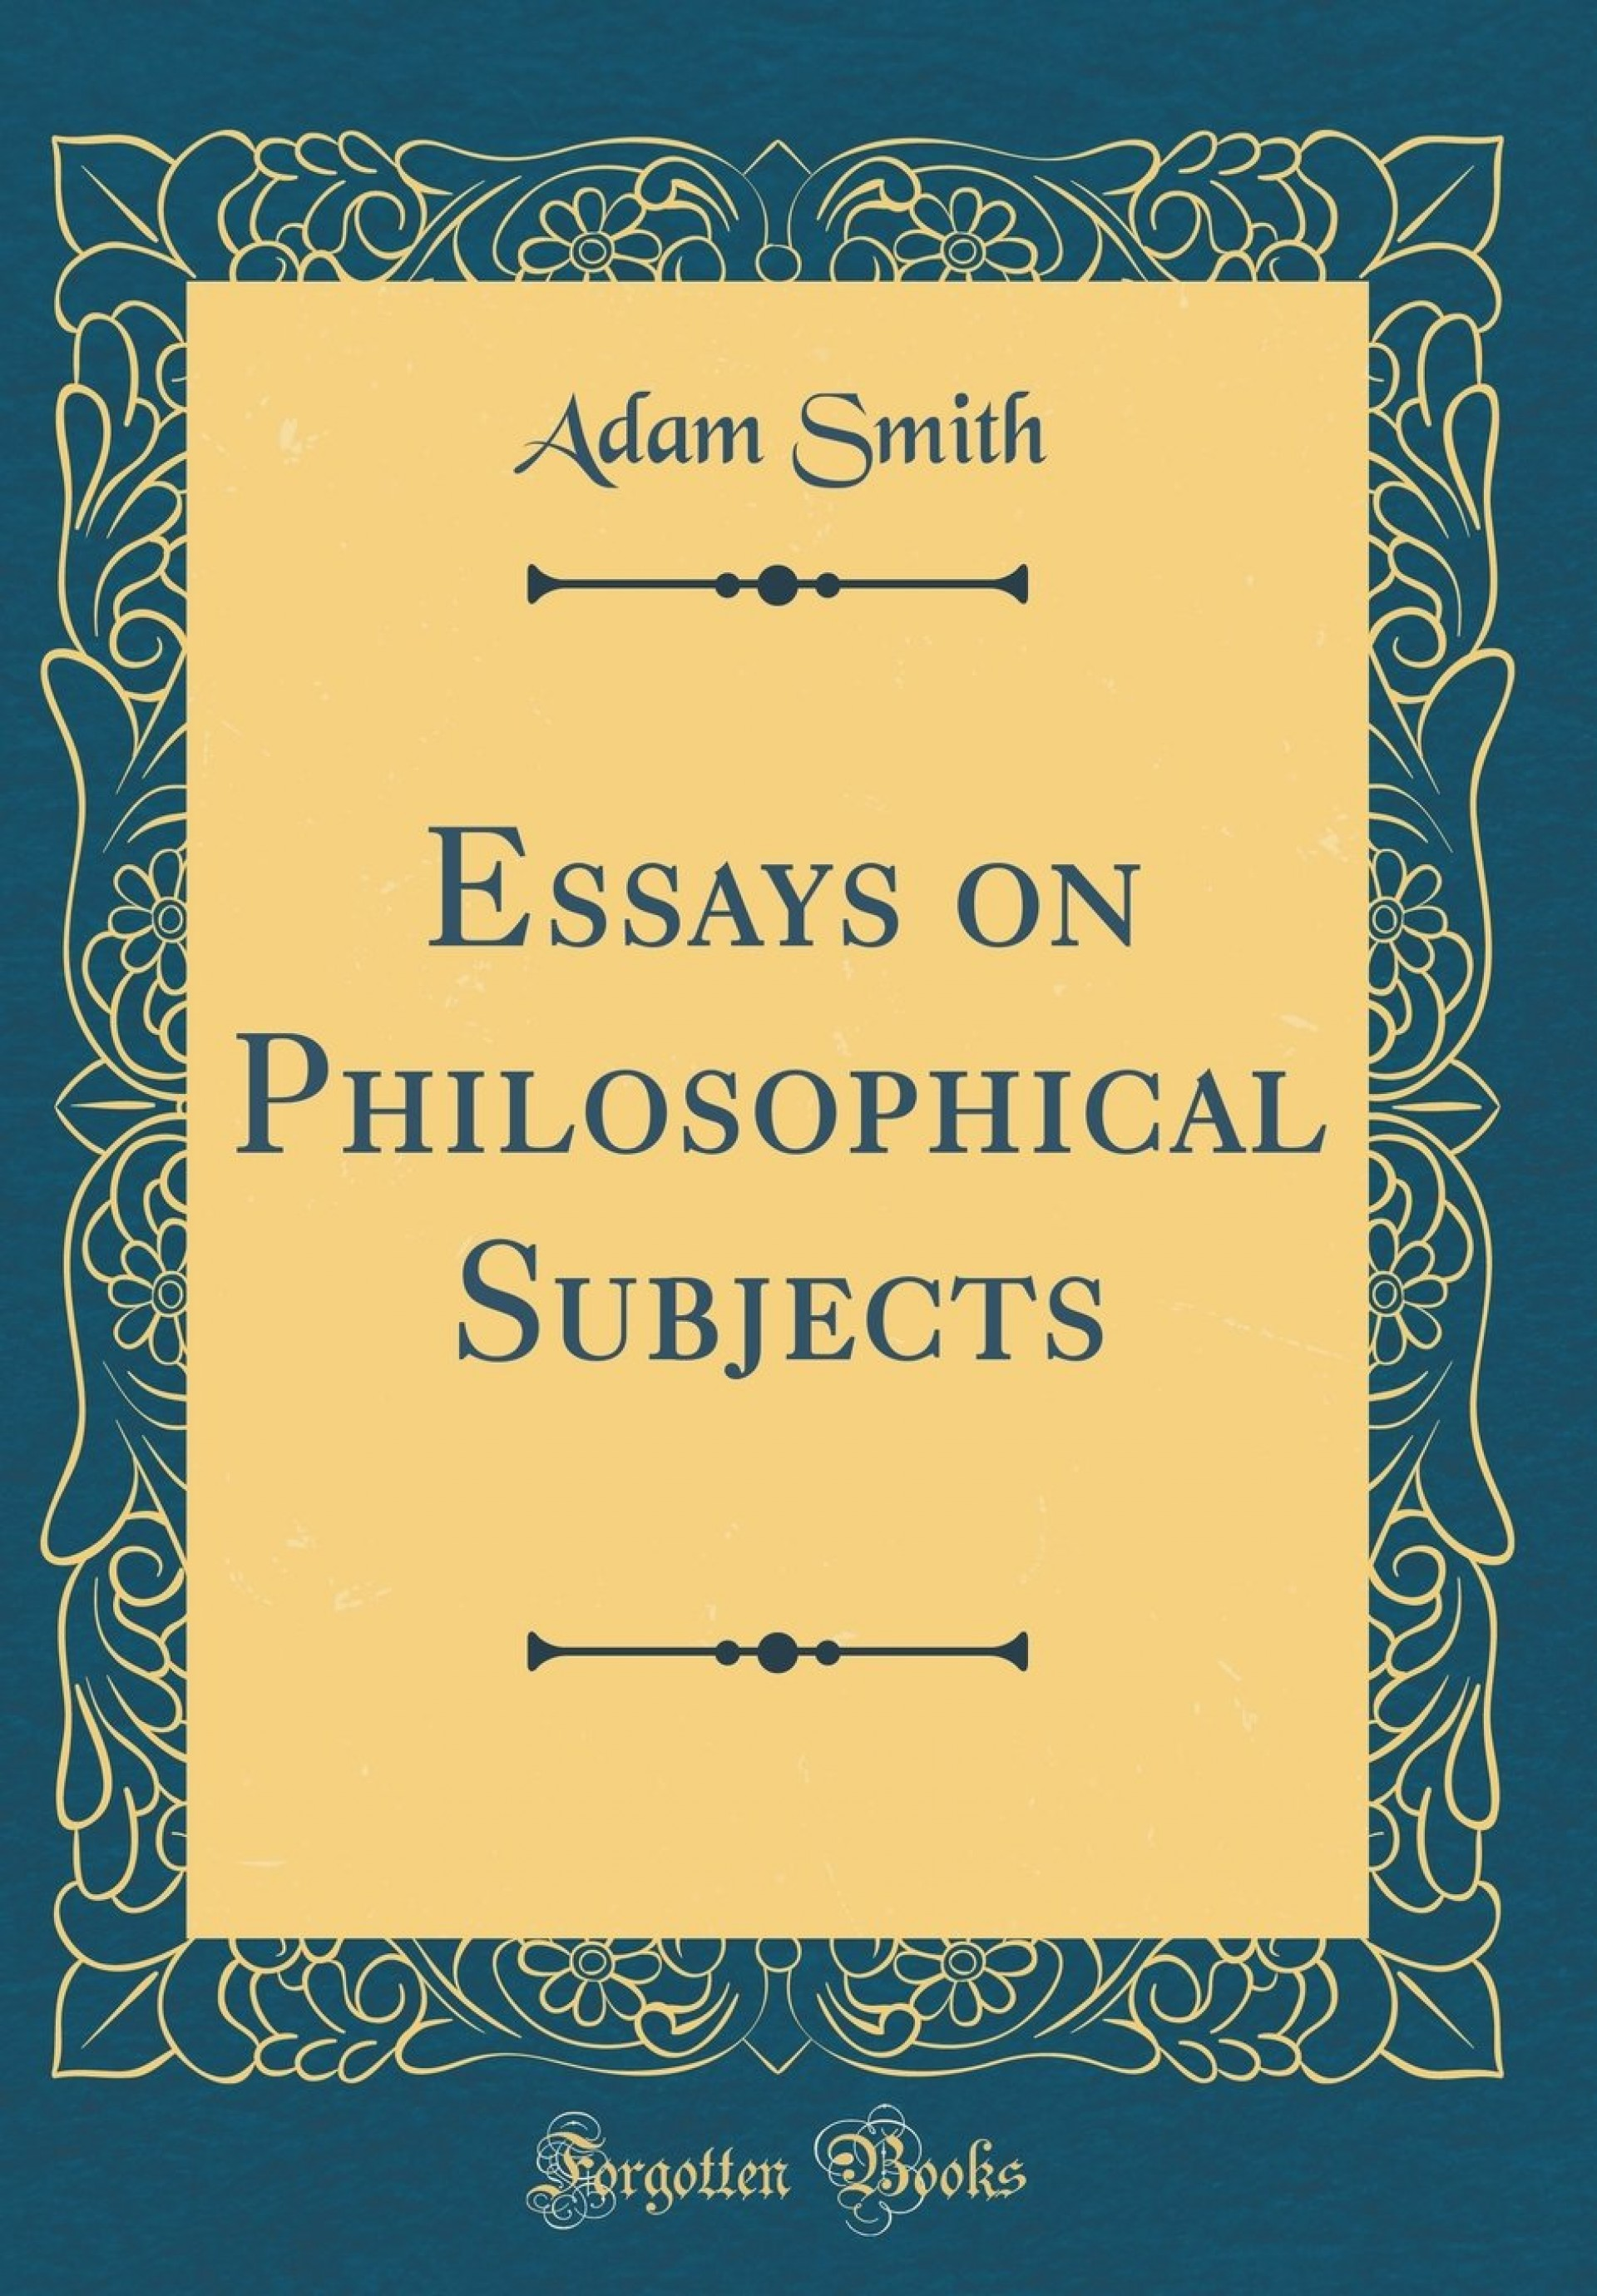 007 Rddwarl Essays On Philosophical Subjects Essay Best Summary Adam Smith 1920